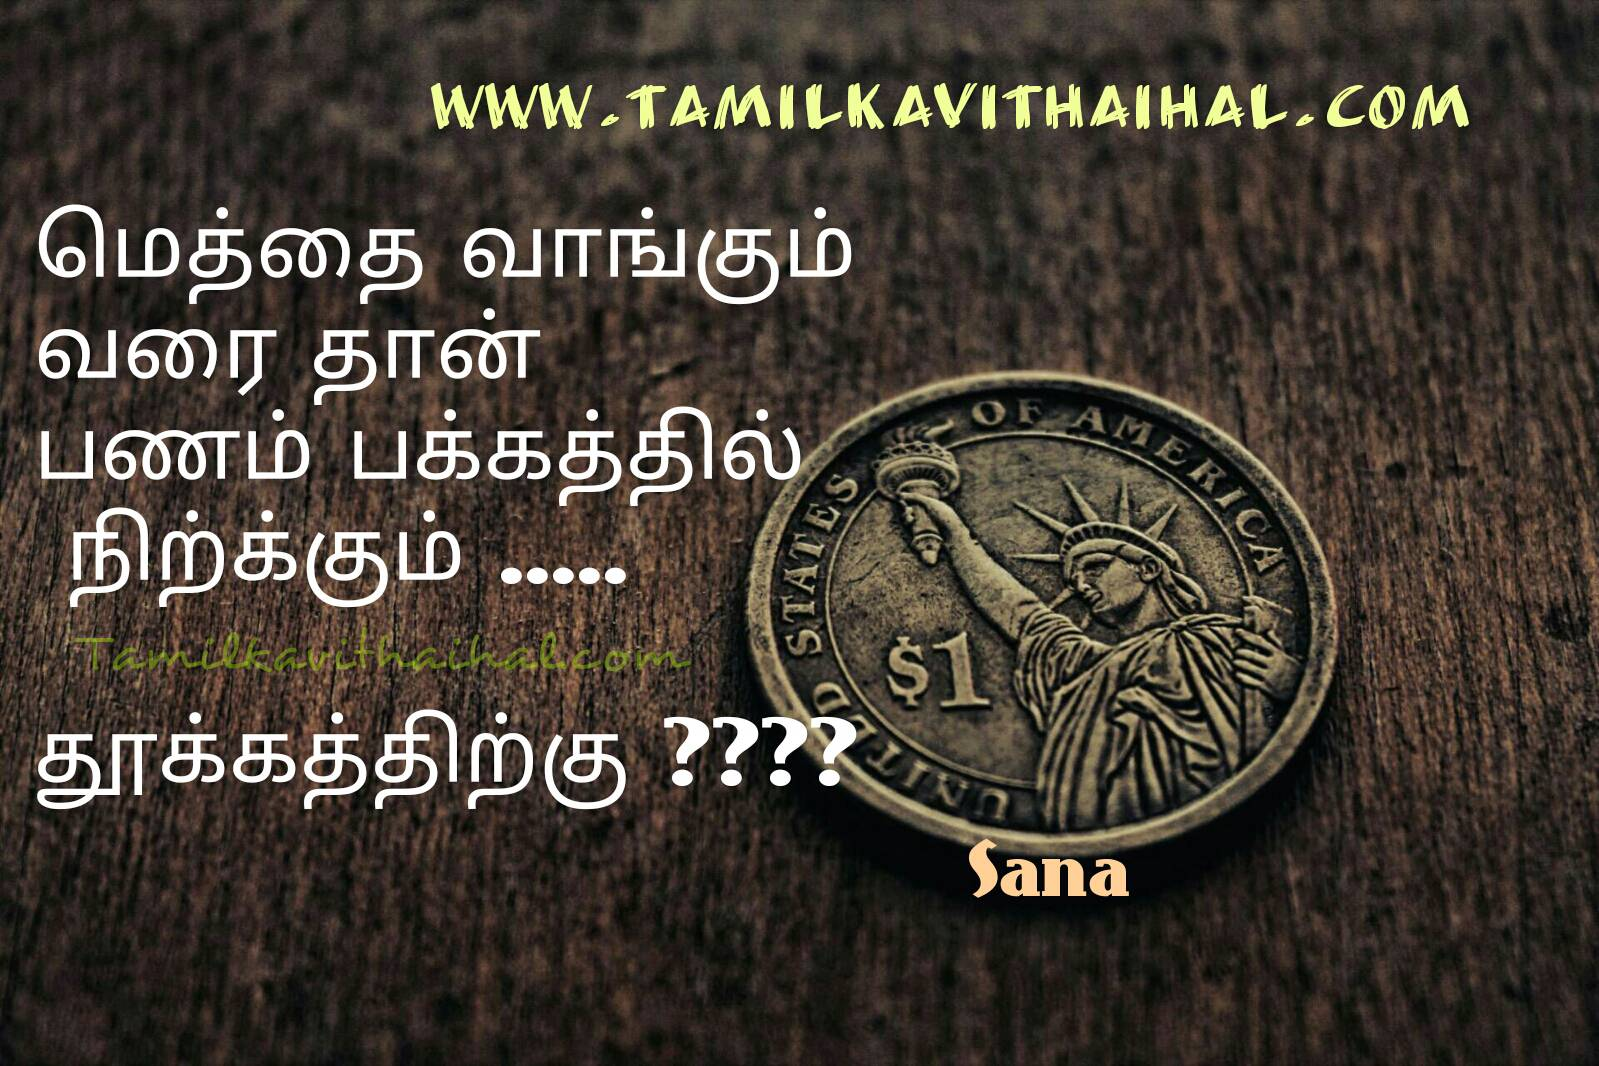 Beautiful Tamil Thathuvam In Our Life Panam Money Future Valkkai